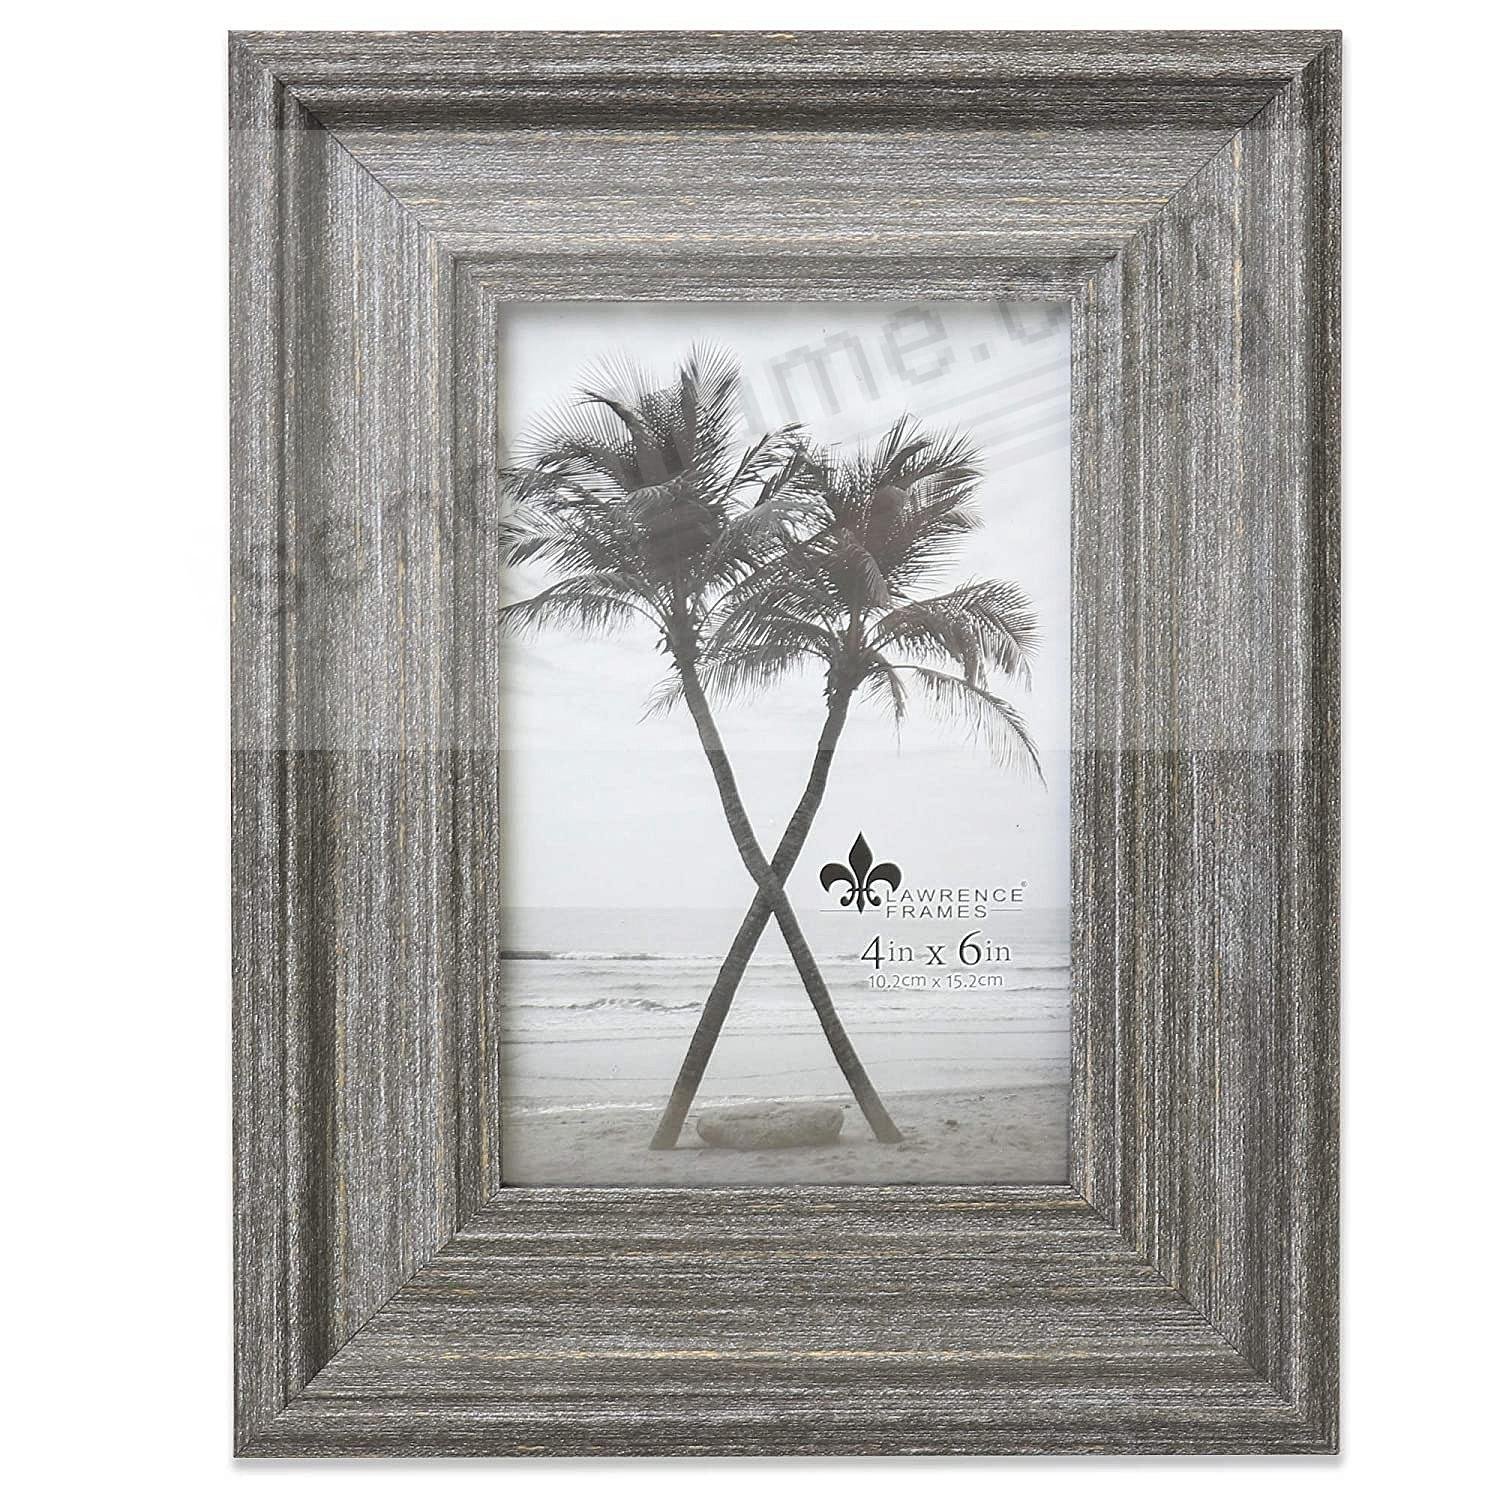 Antique GRAY MARLO 8x10 frame by Lawrence®